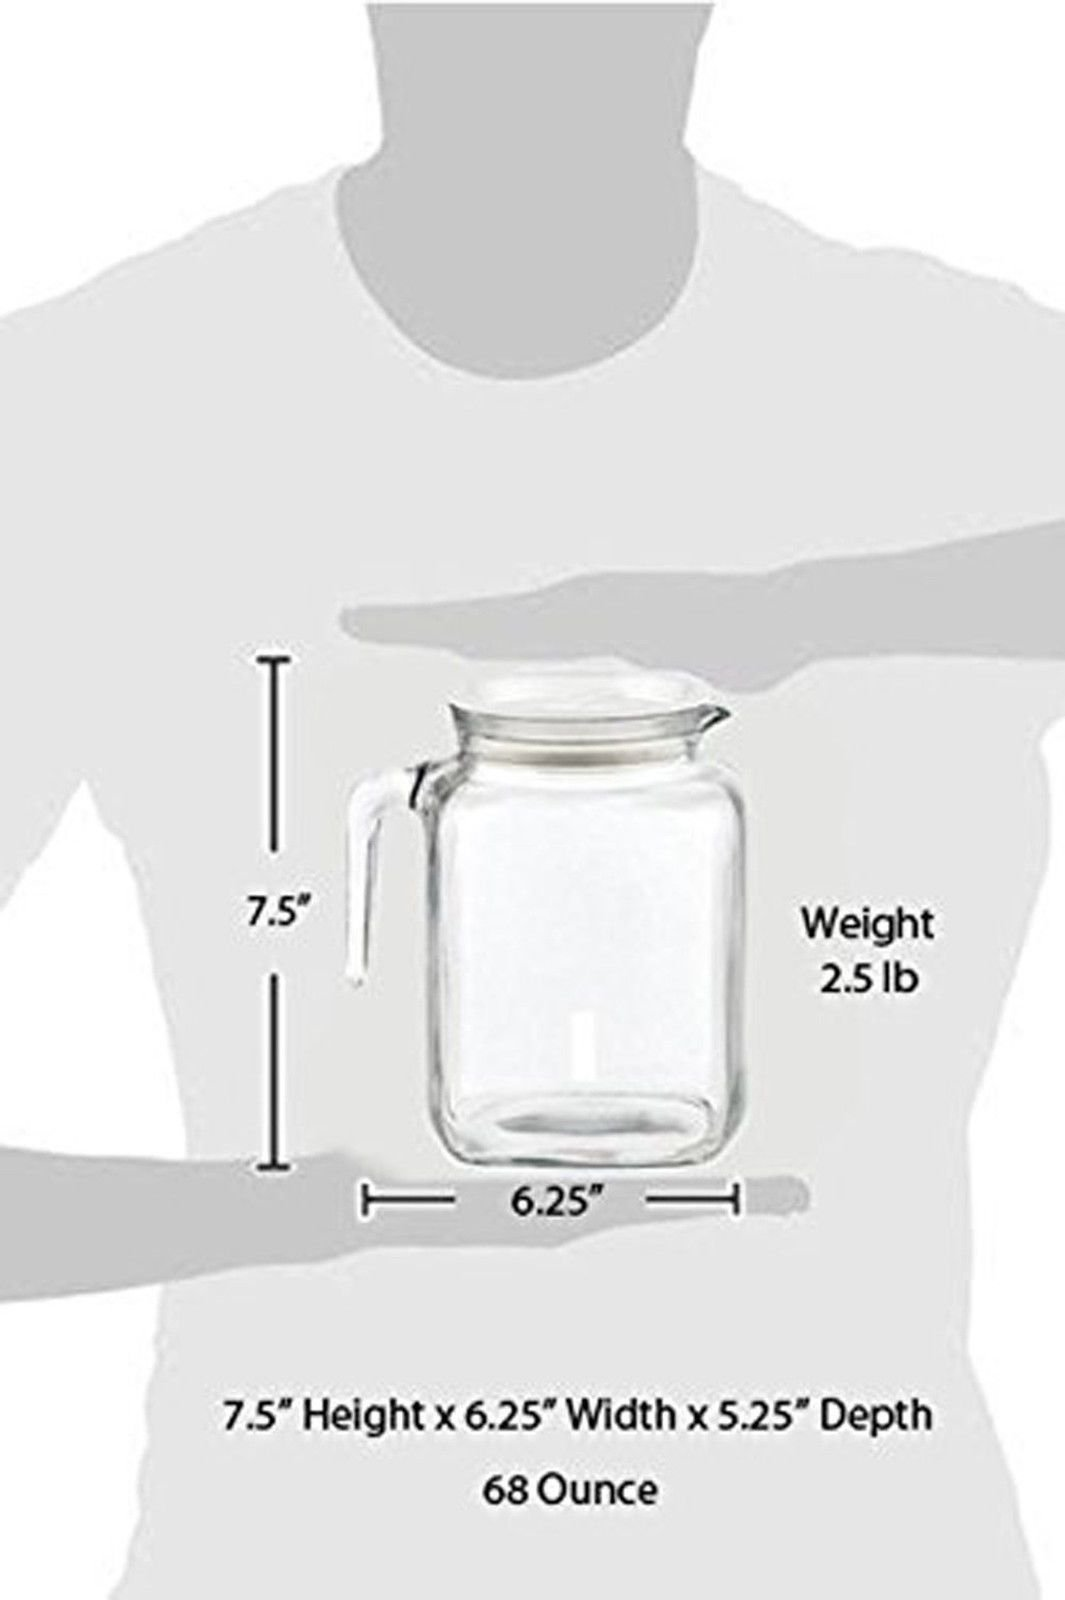 Bormioli Rocco Hermetic Seal Glass Pitcher With Lid and Spout [68 Ounce] Great for Homemade Juice & Iced Tea or for Glass Milk Bottles by Bormioli Rocco (Image #7)